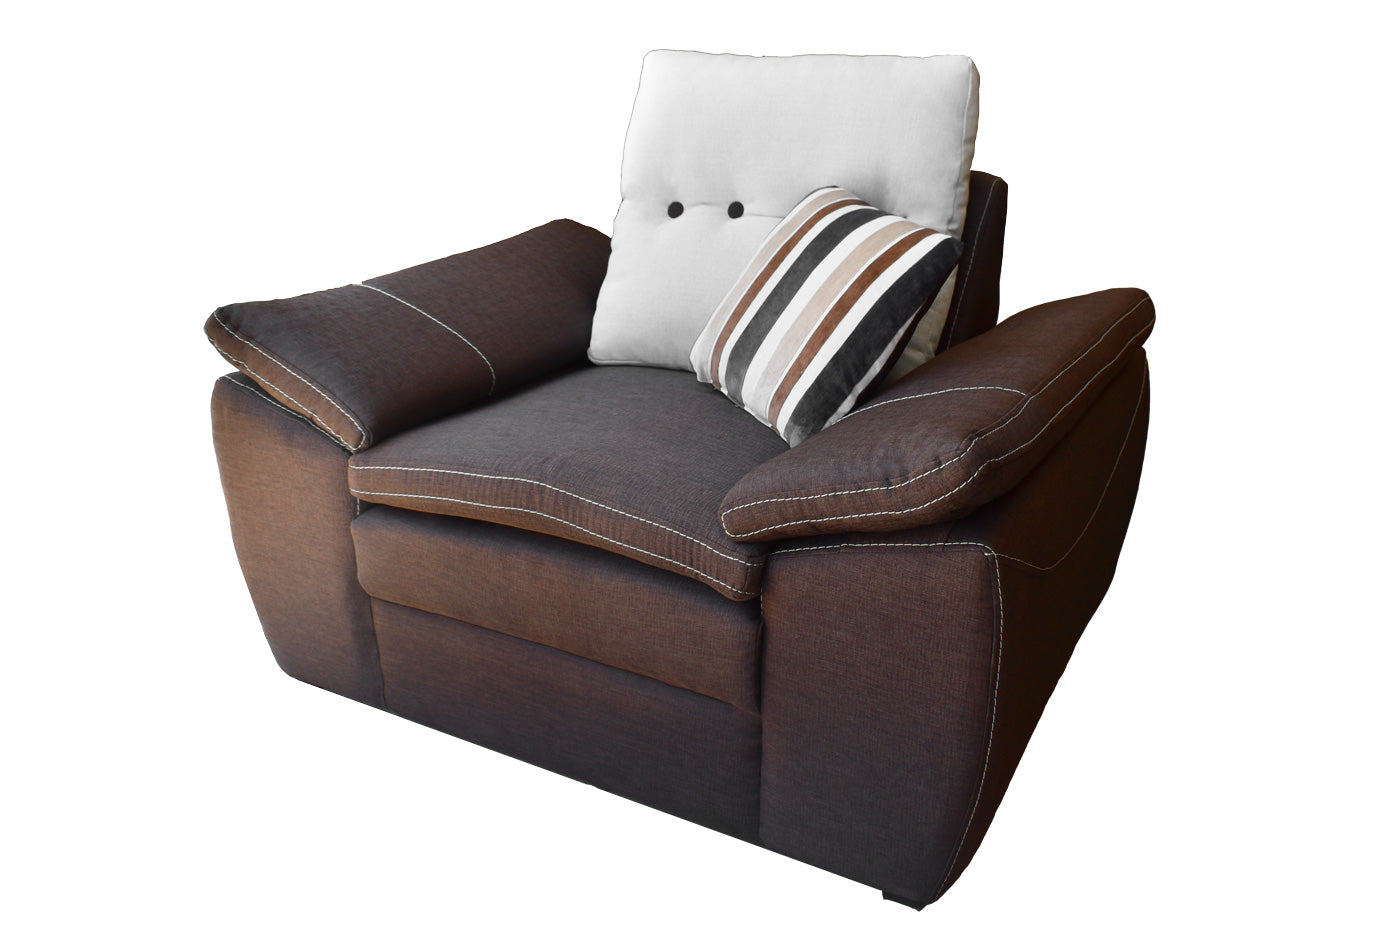 SILLON RELAX TORONTO EXPRESSO - Muebles Troncoso